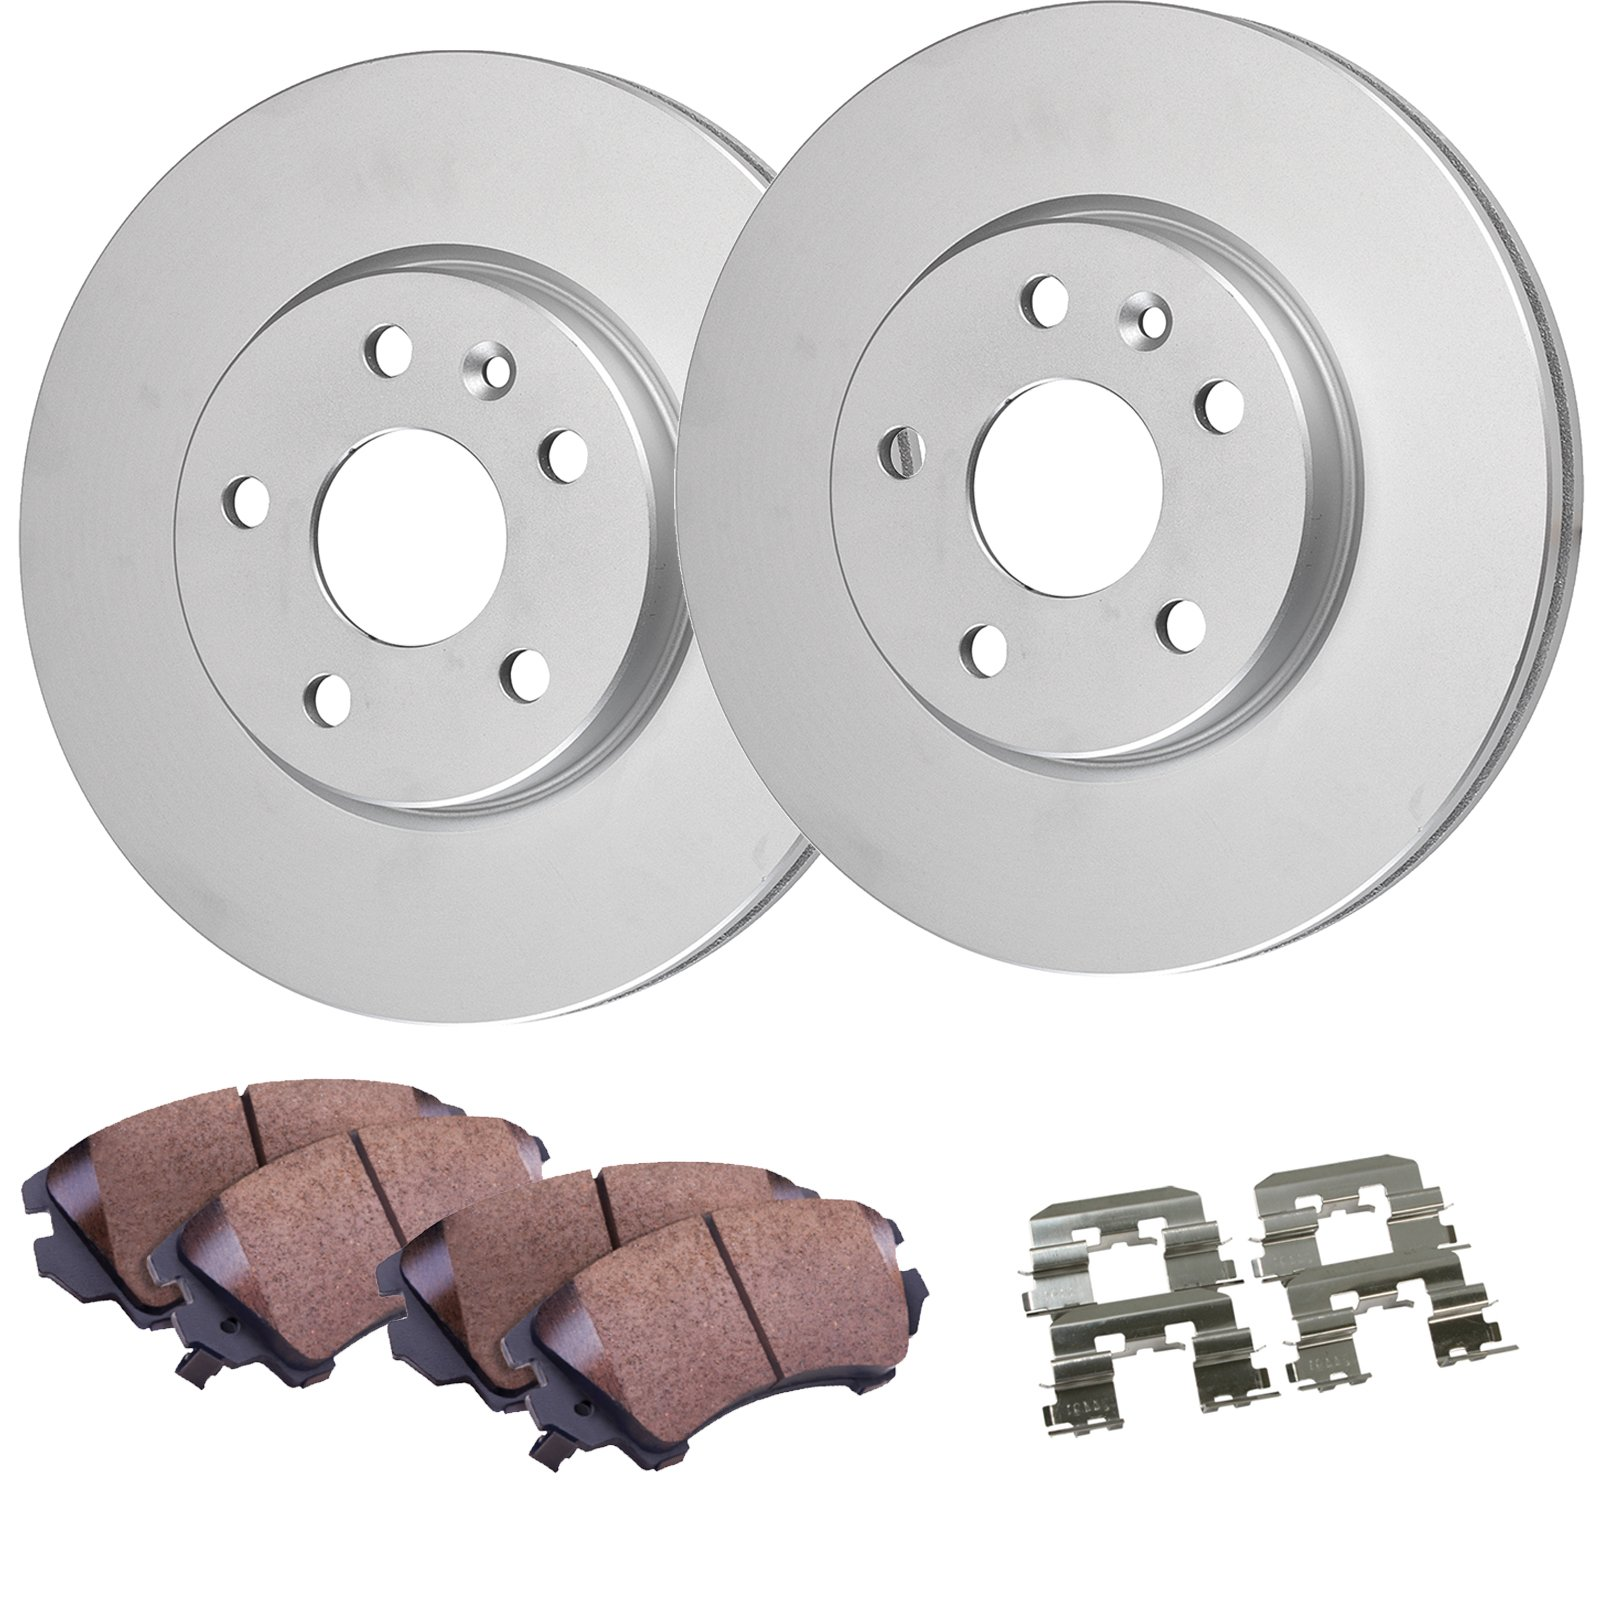 Detroit Axle -Rear Disc Brake Rotors & Ceramic Pads w/Clips Hardware Kit Premium GRADE for 2007-2016 Jeep Wrangler